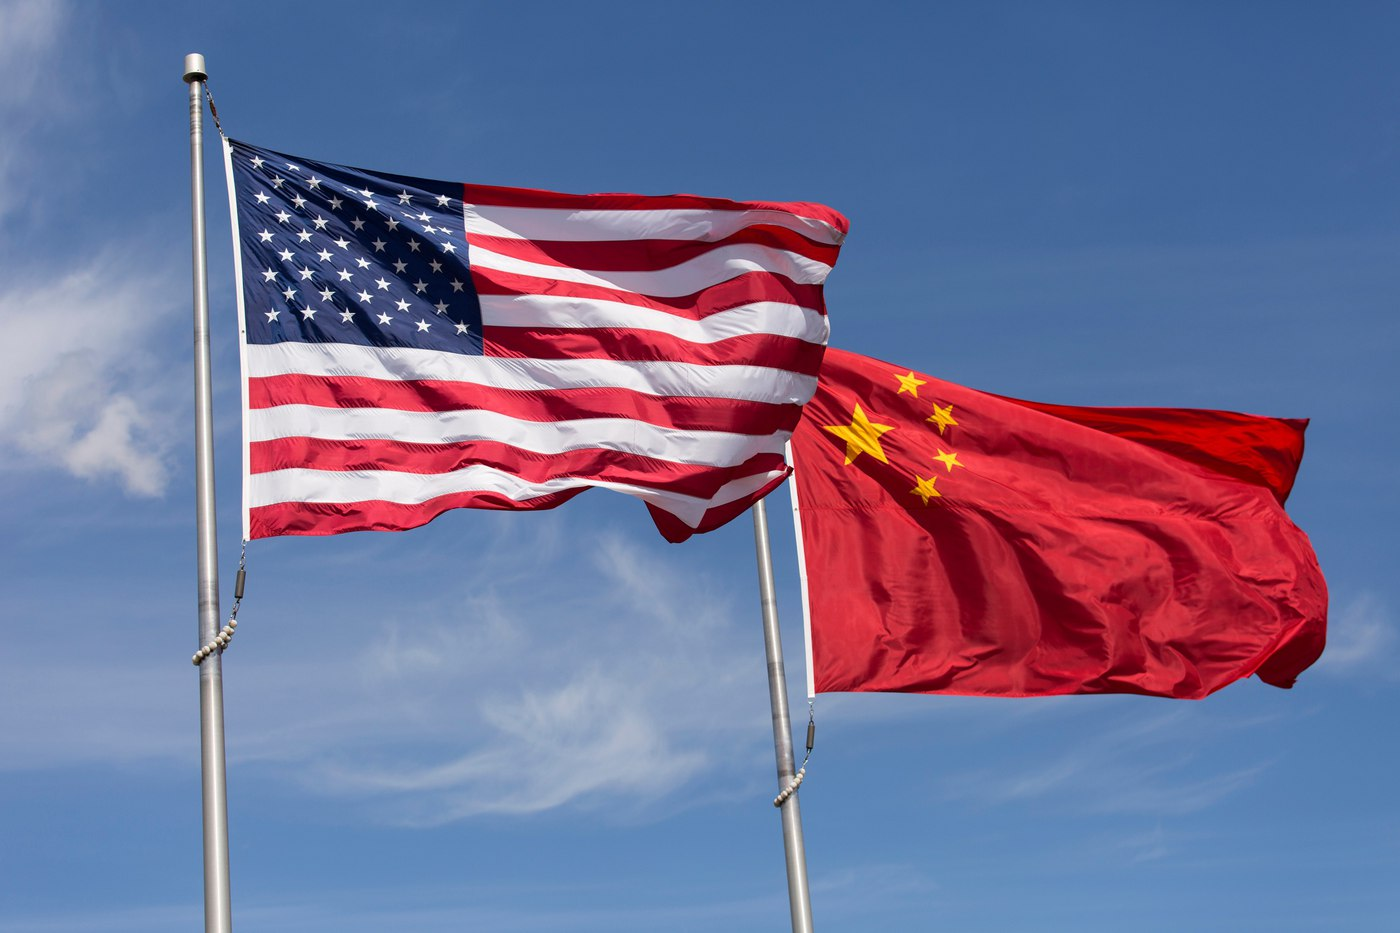 The U.S. Versus China with Flash Memory Stuck in the Middle